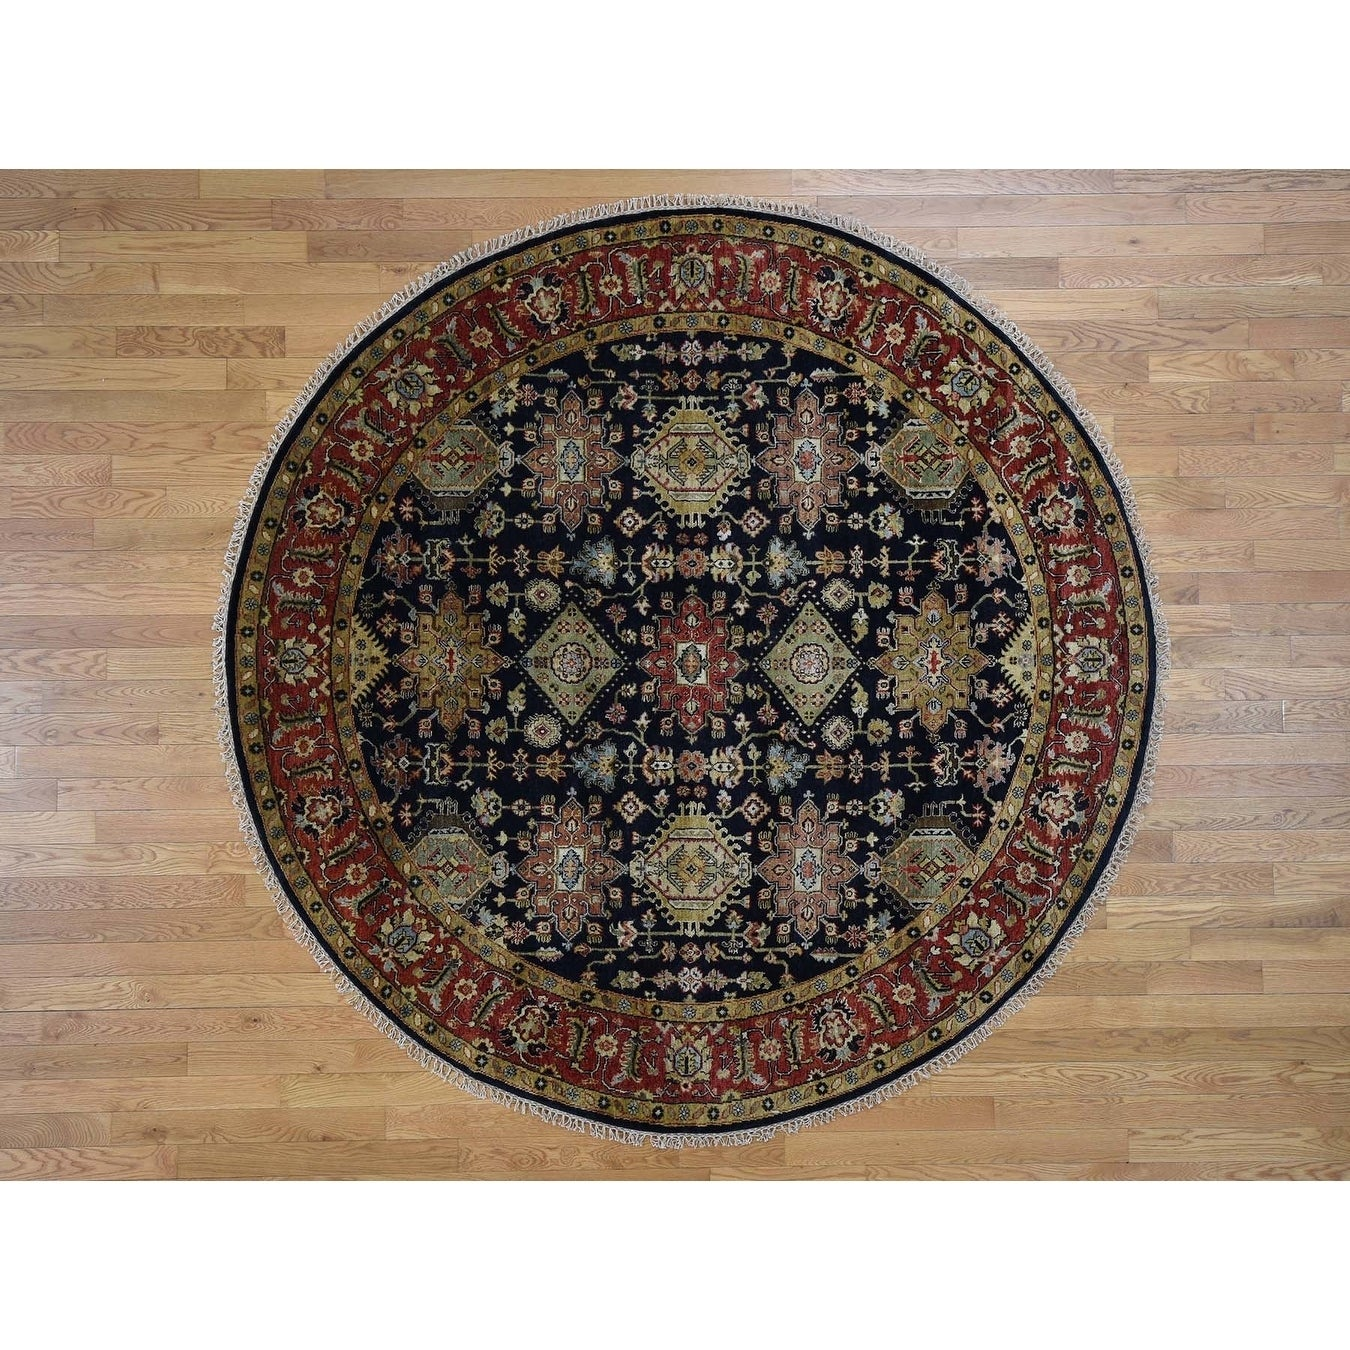 Hand Knotted Black Heriz with Wool Oriental Rug - 710 x 710